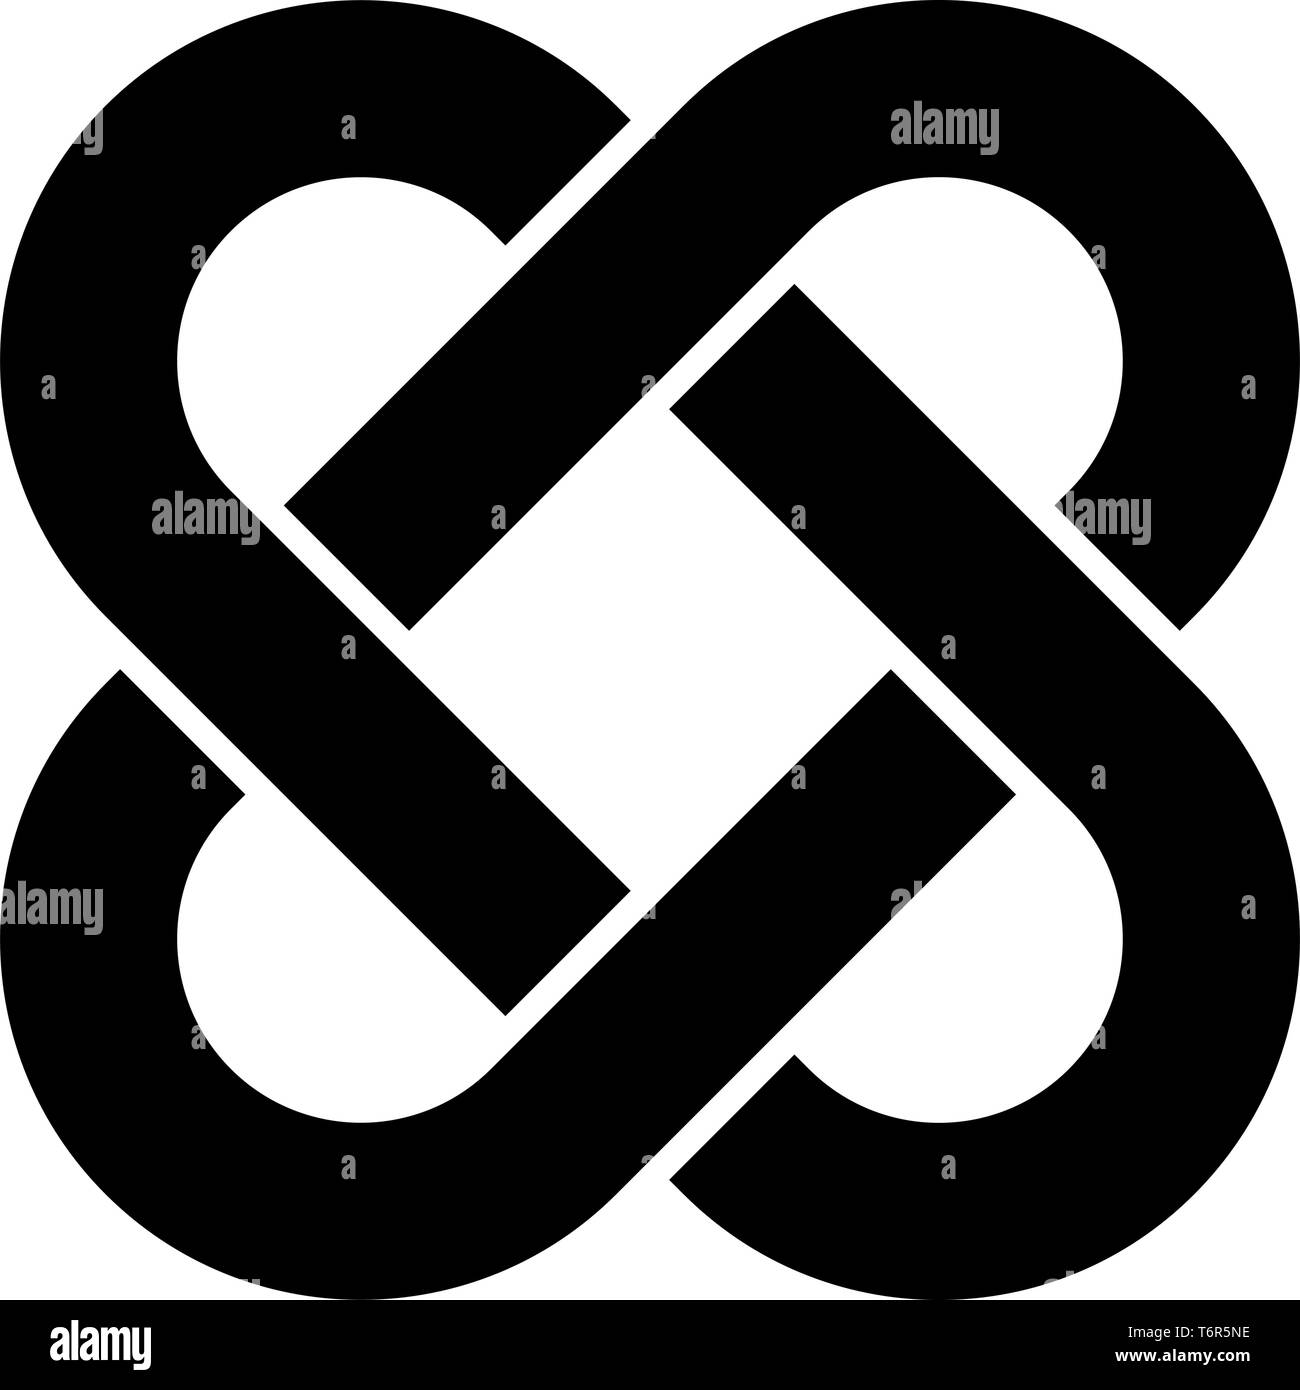 Celtic knot icon black color vector illustration flat style